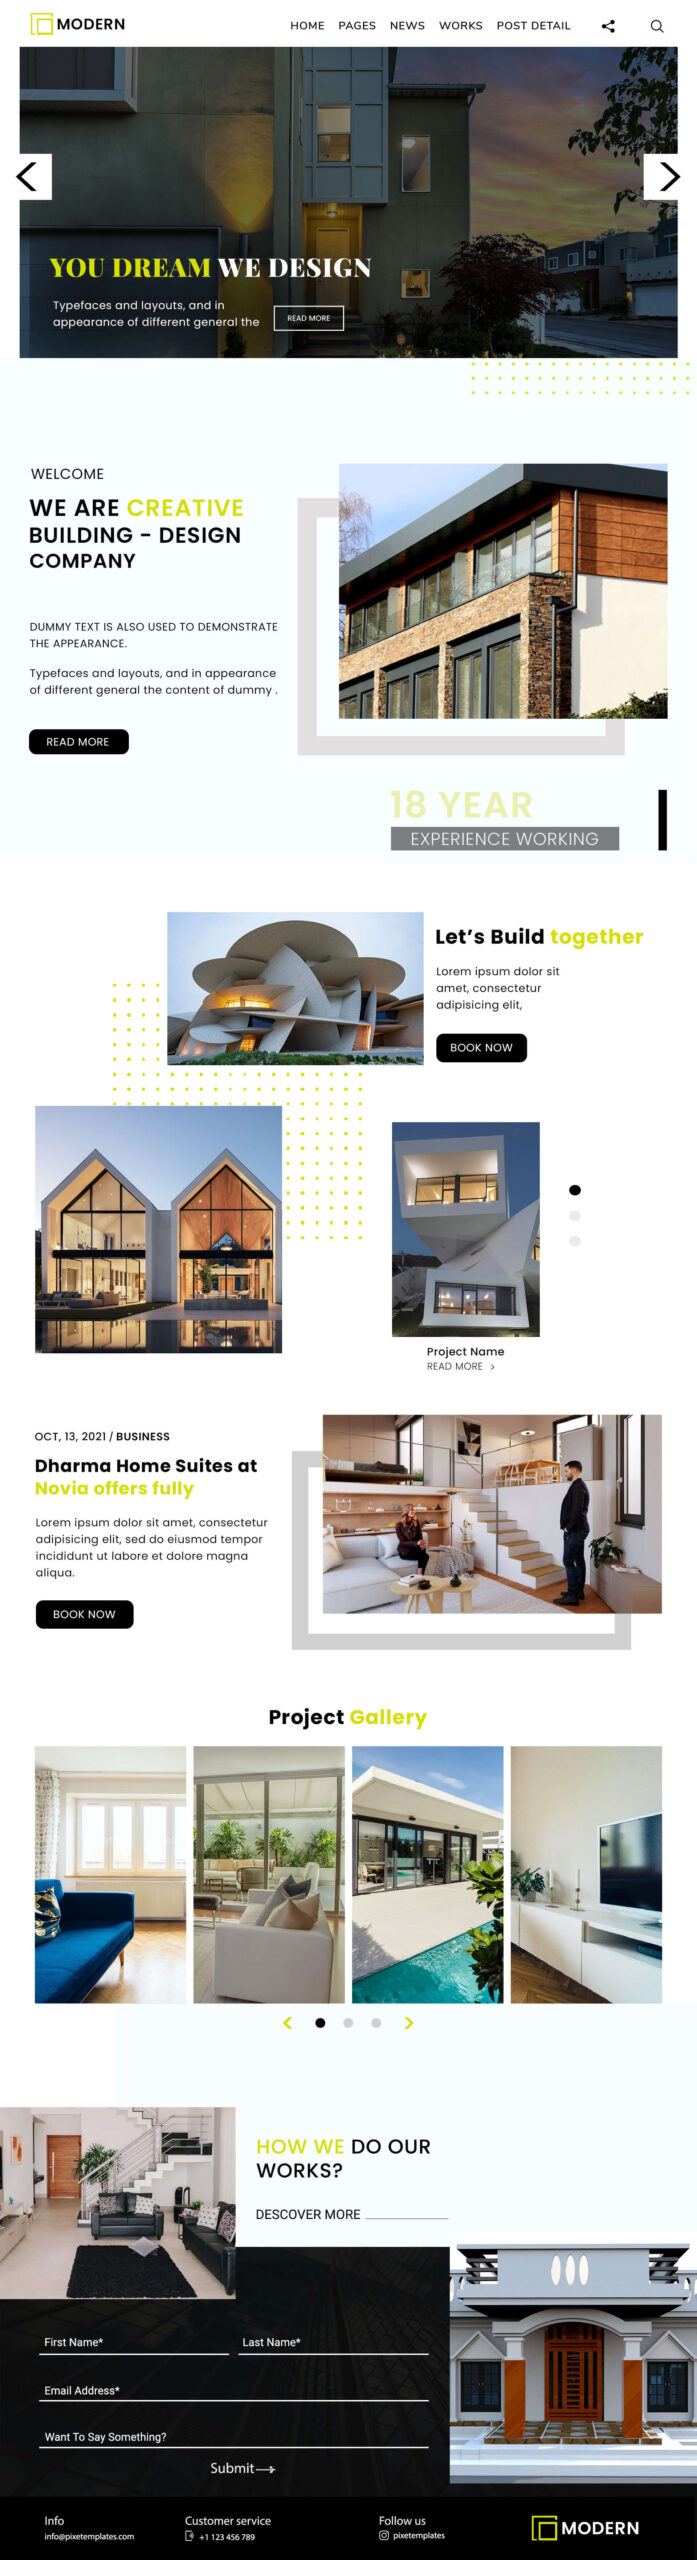 Modern Website Template for Architects in PSD Format